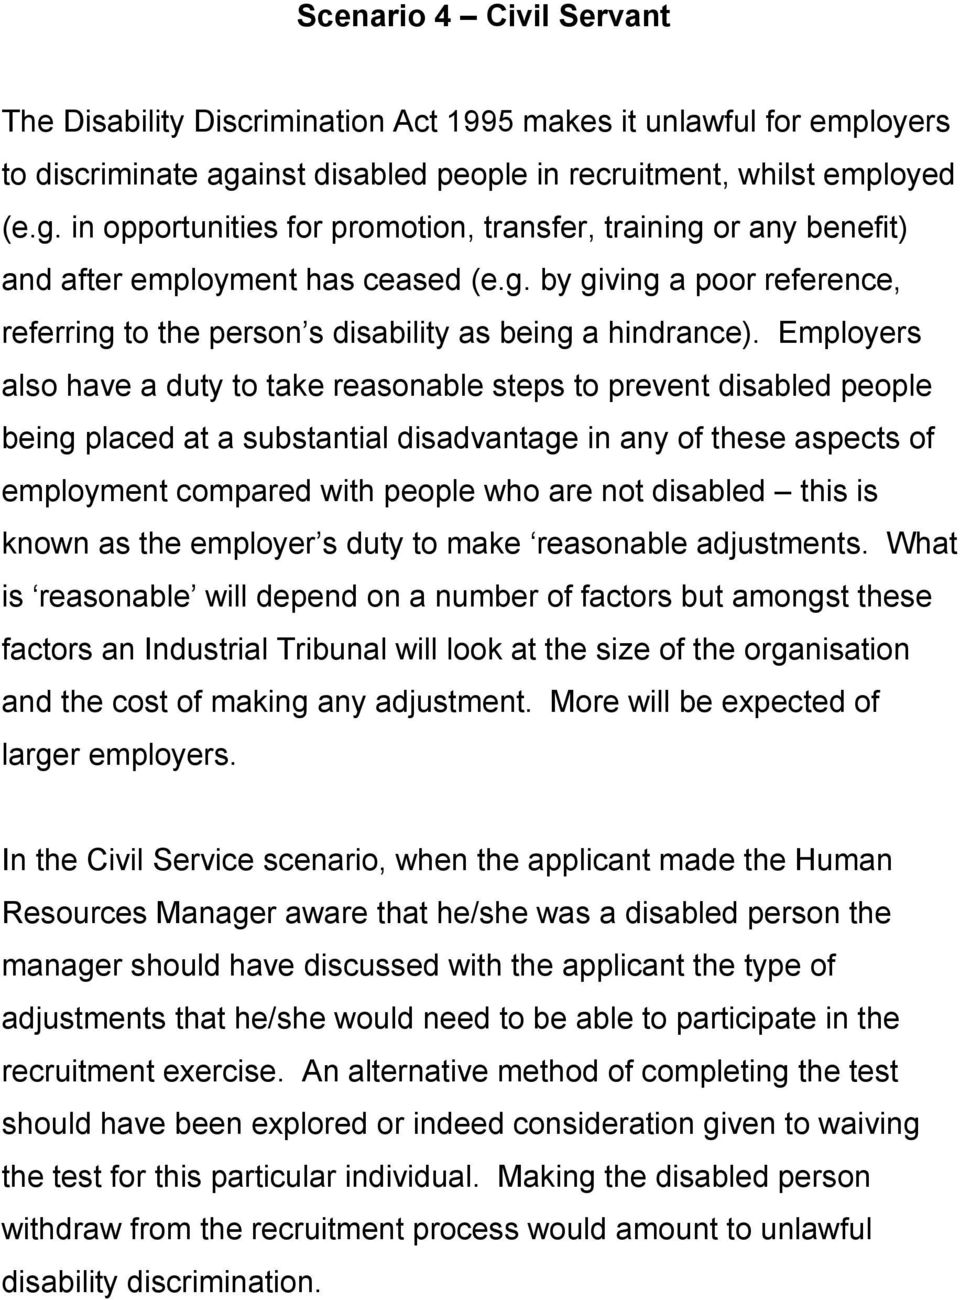 Employers also have a duty to take reasonable steps to prevent disabled people being placed at a substantial disadvantage in any of these aspects of employment compared with people who are not